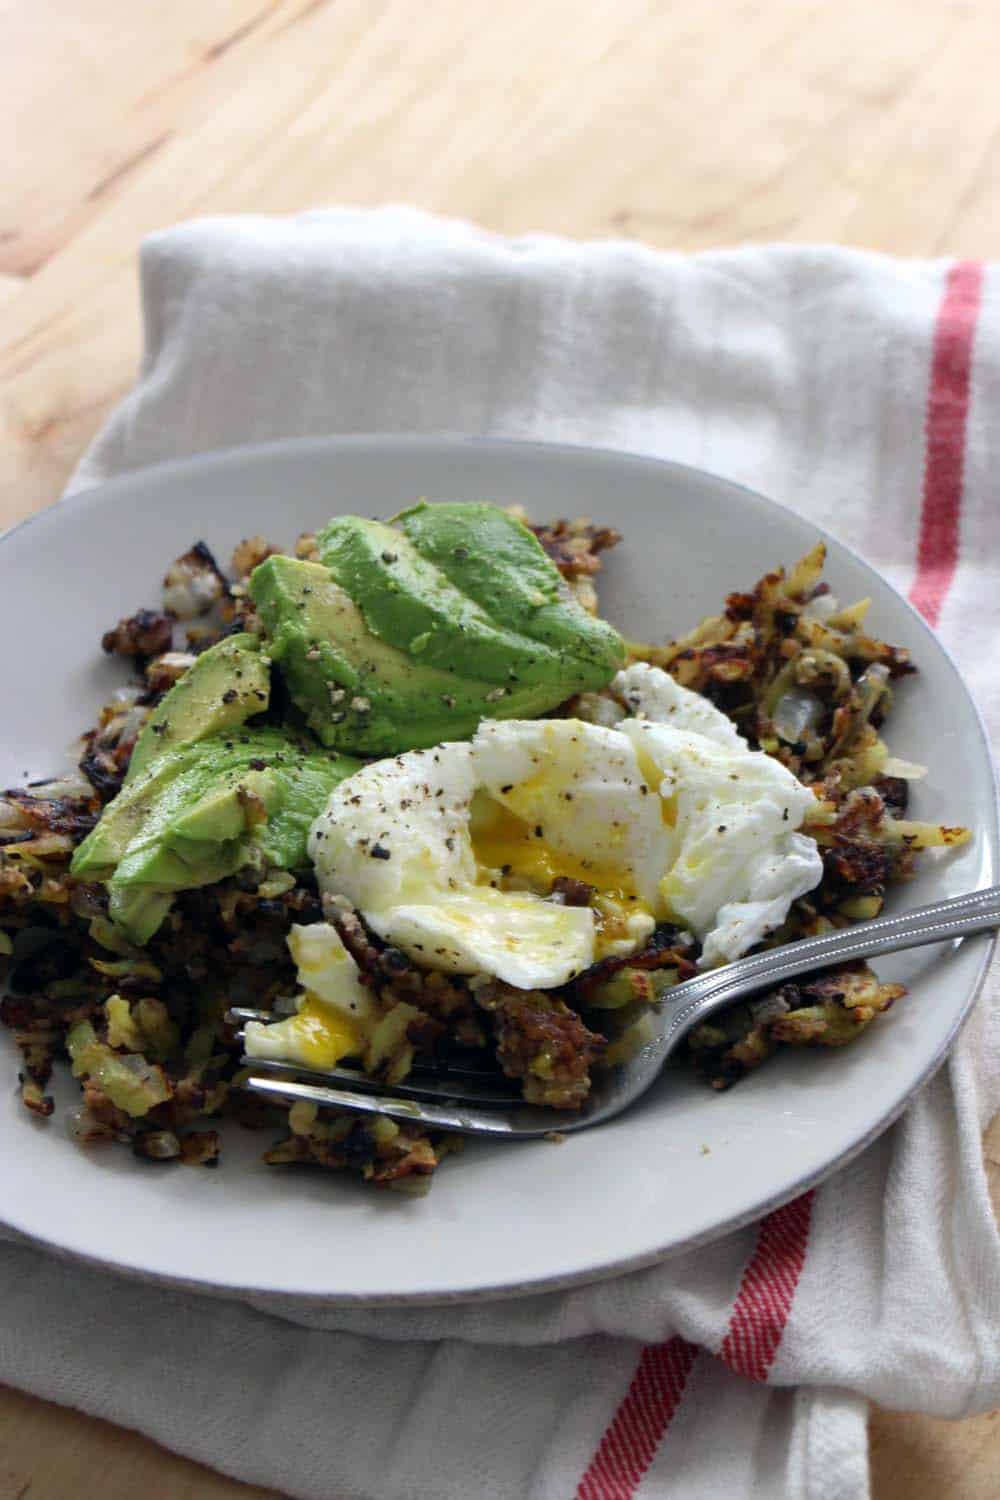 White plate holding veggie burger hash browns, sliced avocado, a poached egg, and a fork.